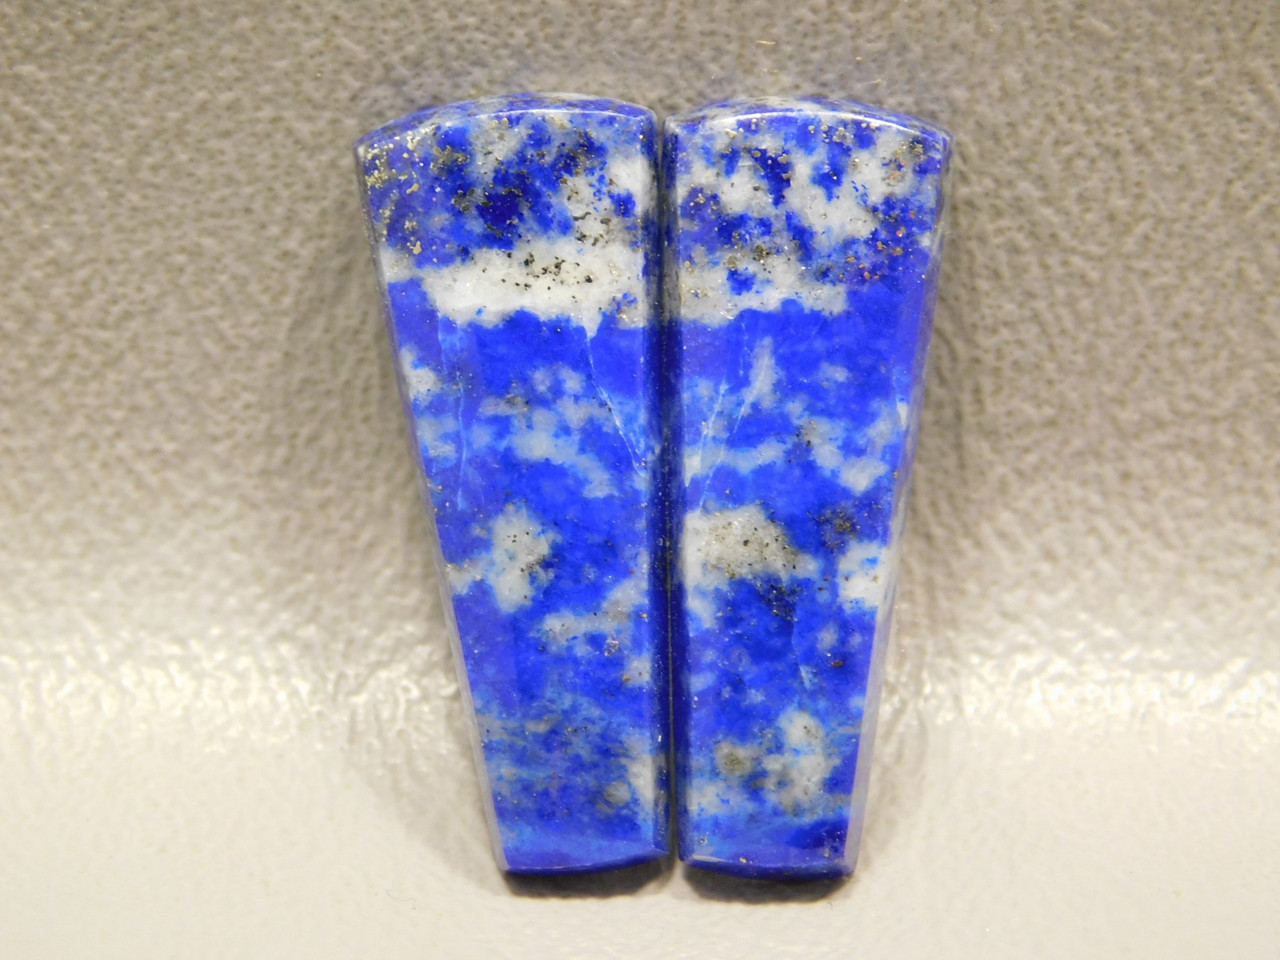 Blue Designer Cabochons Lapis Lazuli Matched Pairs for Earrings #18